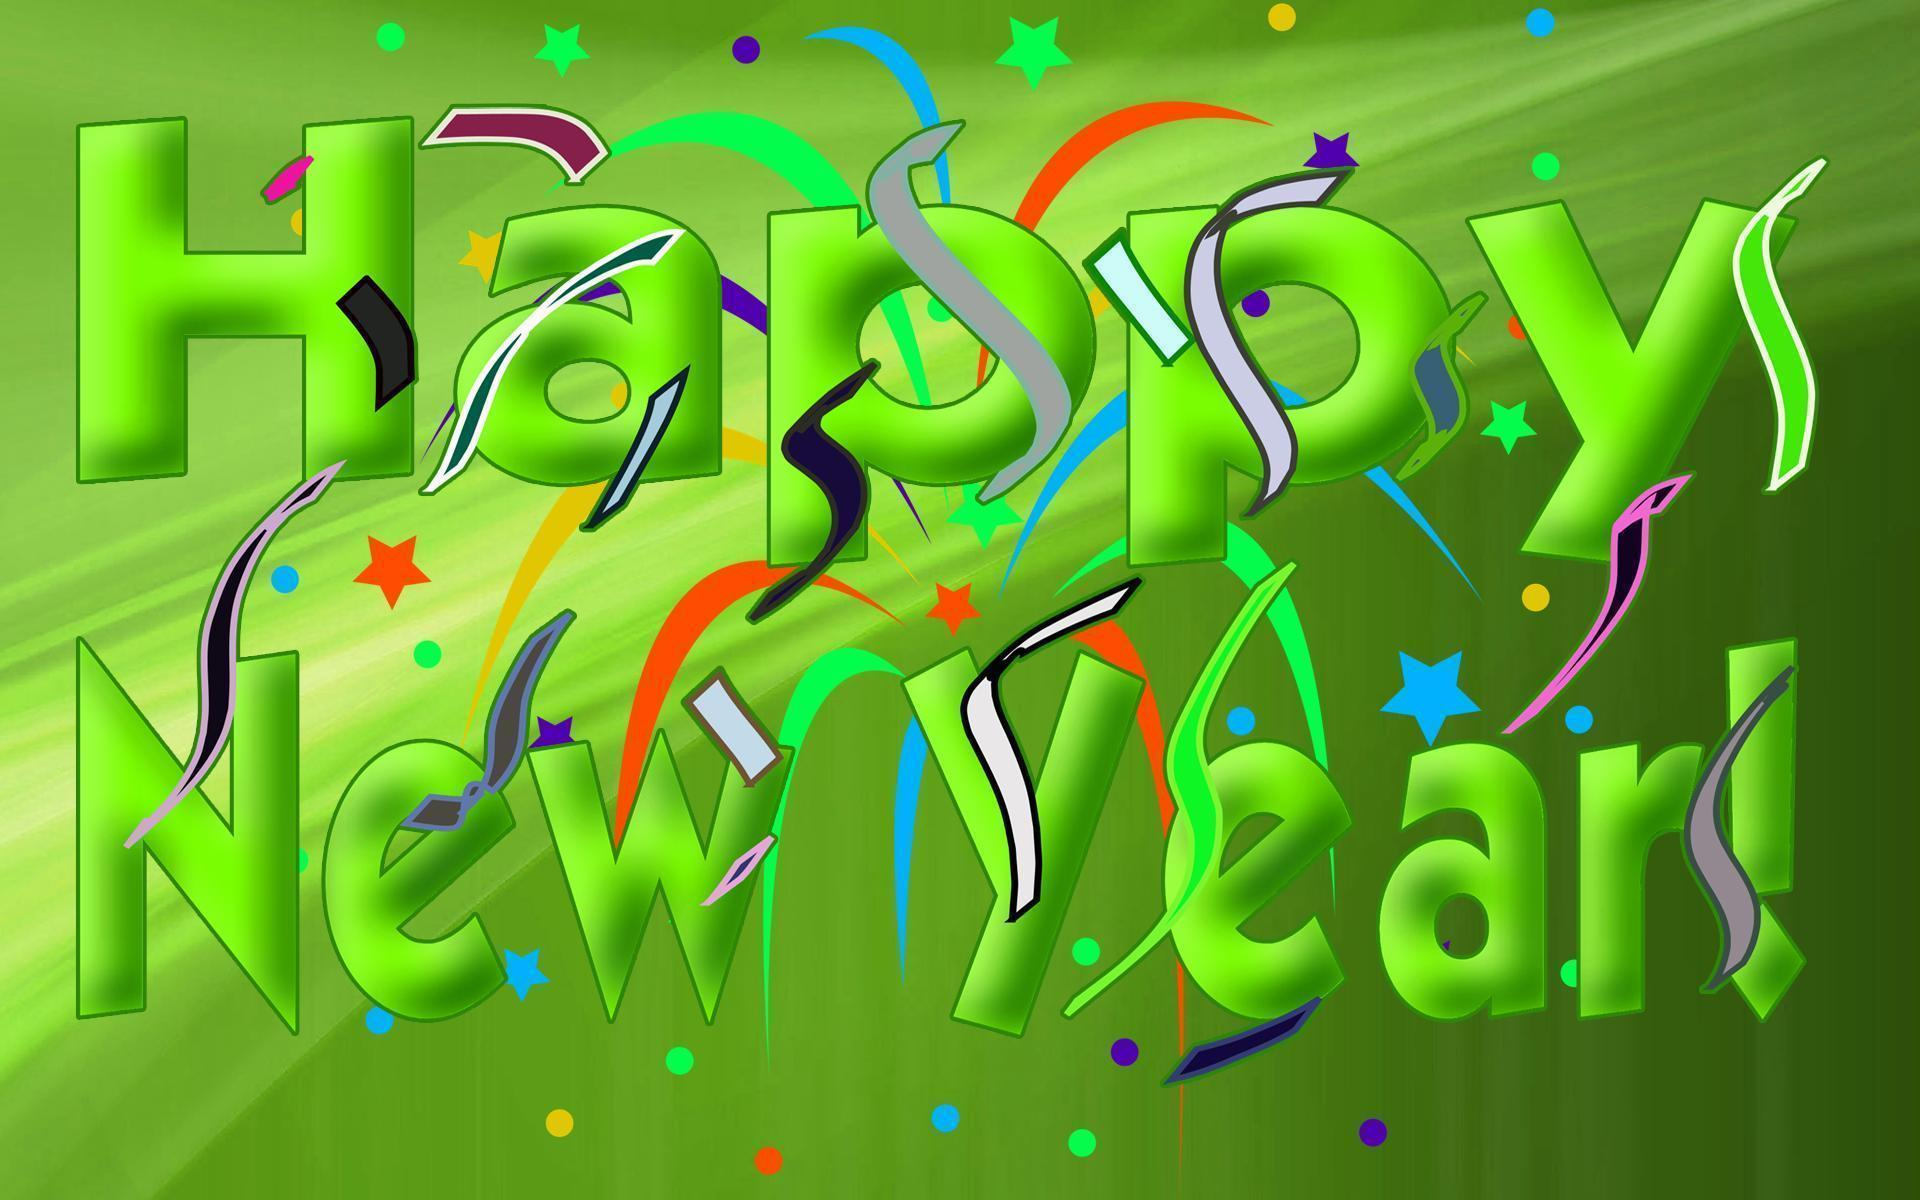 Happy New Year Wallpapers HD 2015